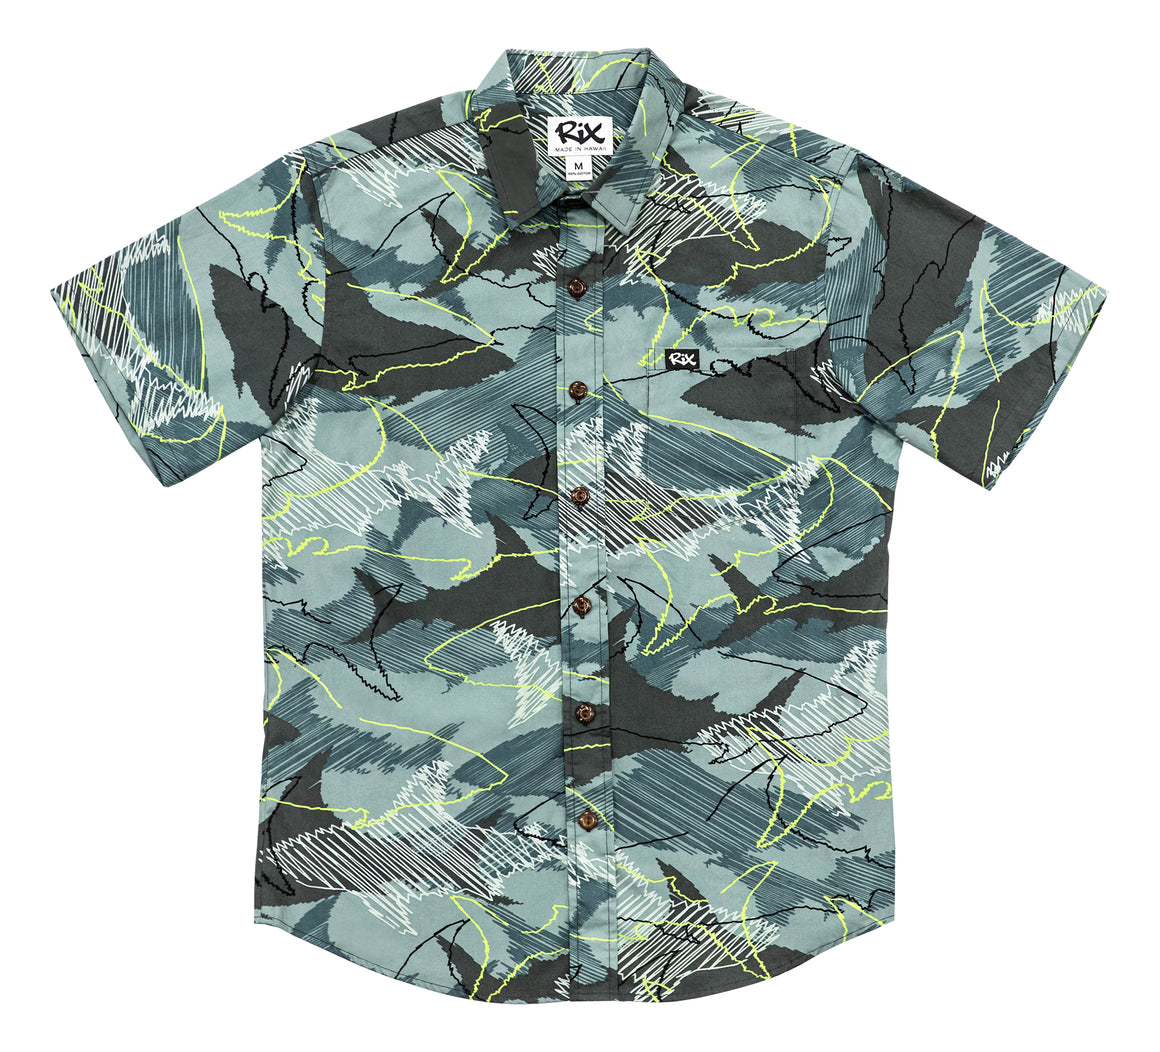 MANO Slim Fit Hawaiian Shirt